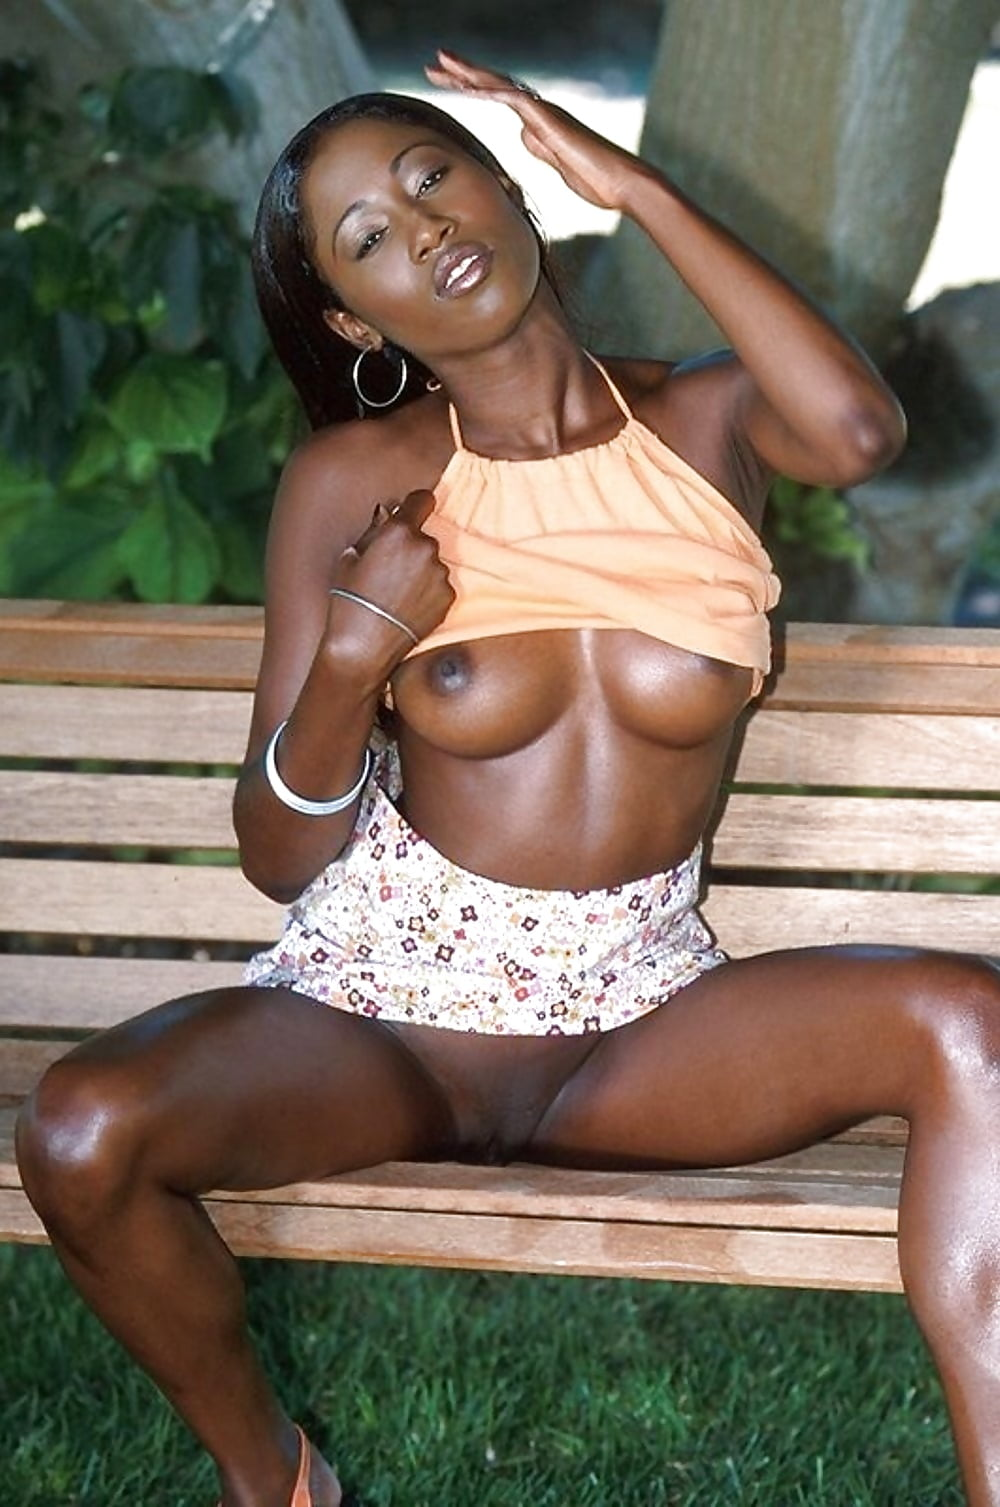 Twins sex ebony india videos banks big cock